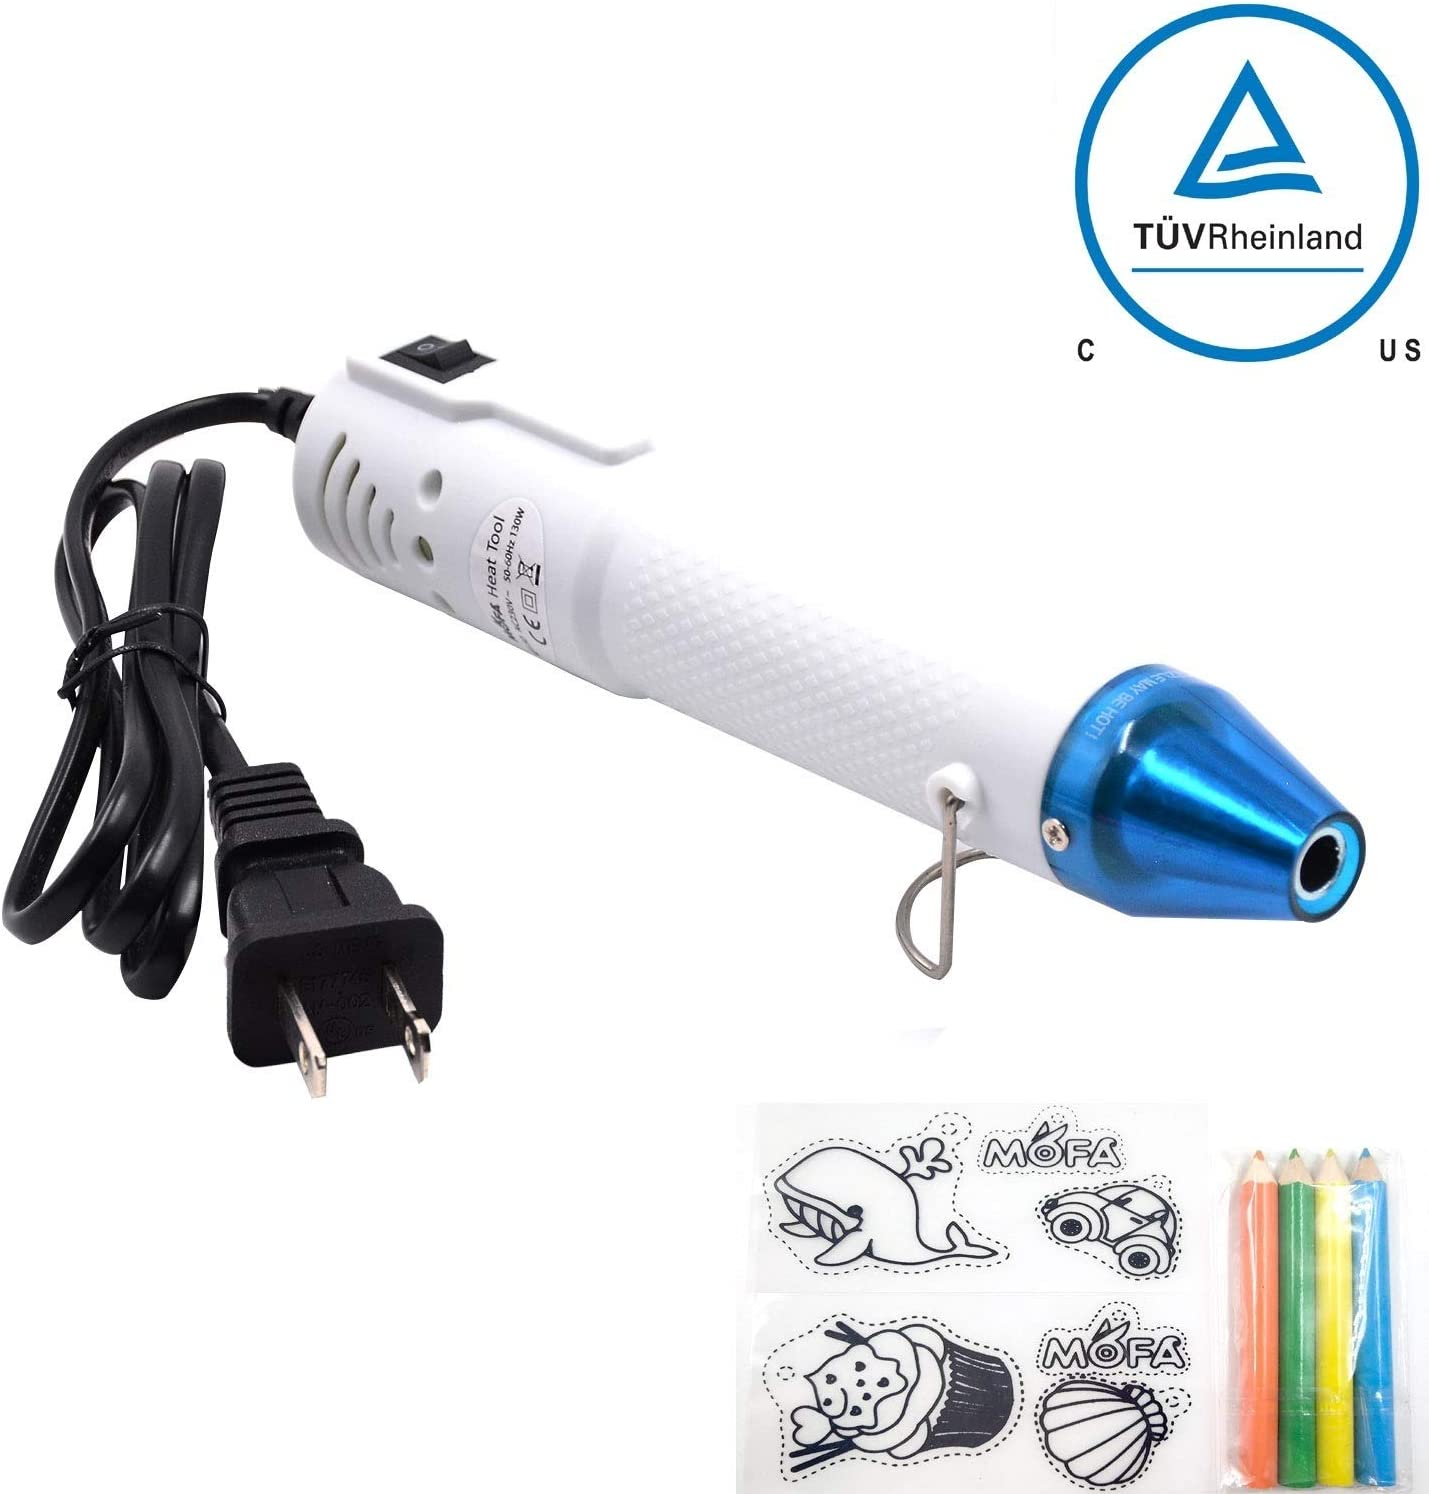 mofa Embossing Heat Gun,Hot Air Gun Tools Shrink Gun with Stand For DIY Embossing And Drying Paint Multi-Purpose Electric Heating Nozzle 130W With Heat Shrink Film,Colorful Pencil For Free(White,Blue)